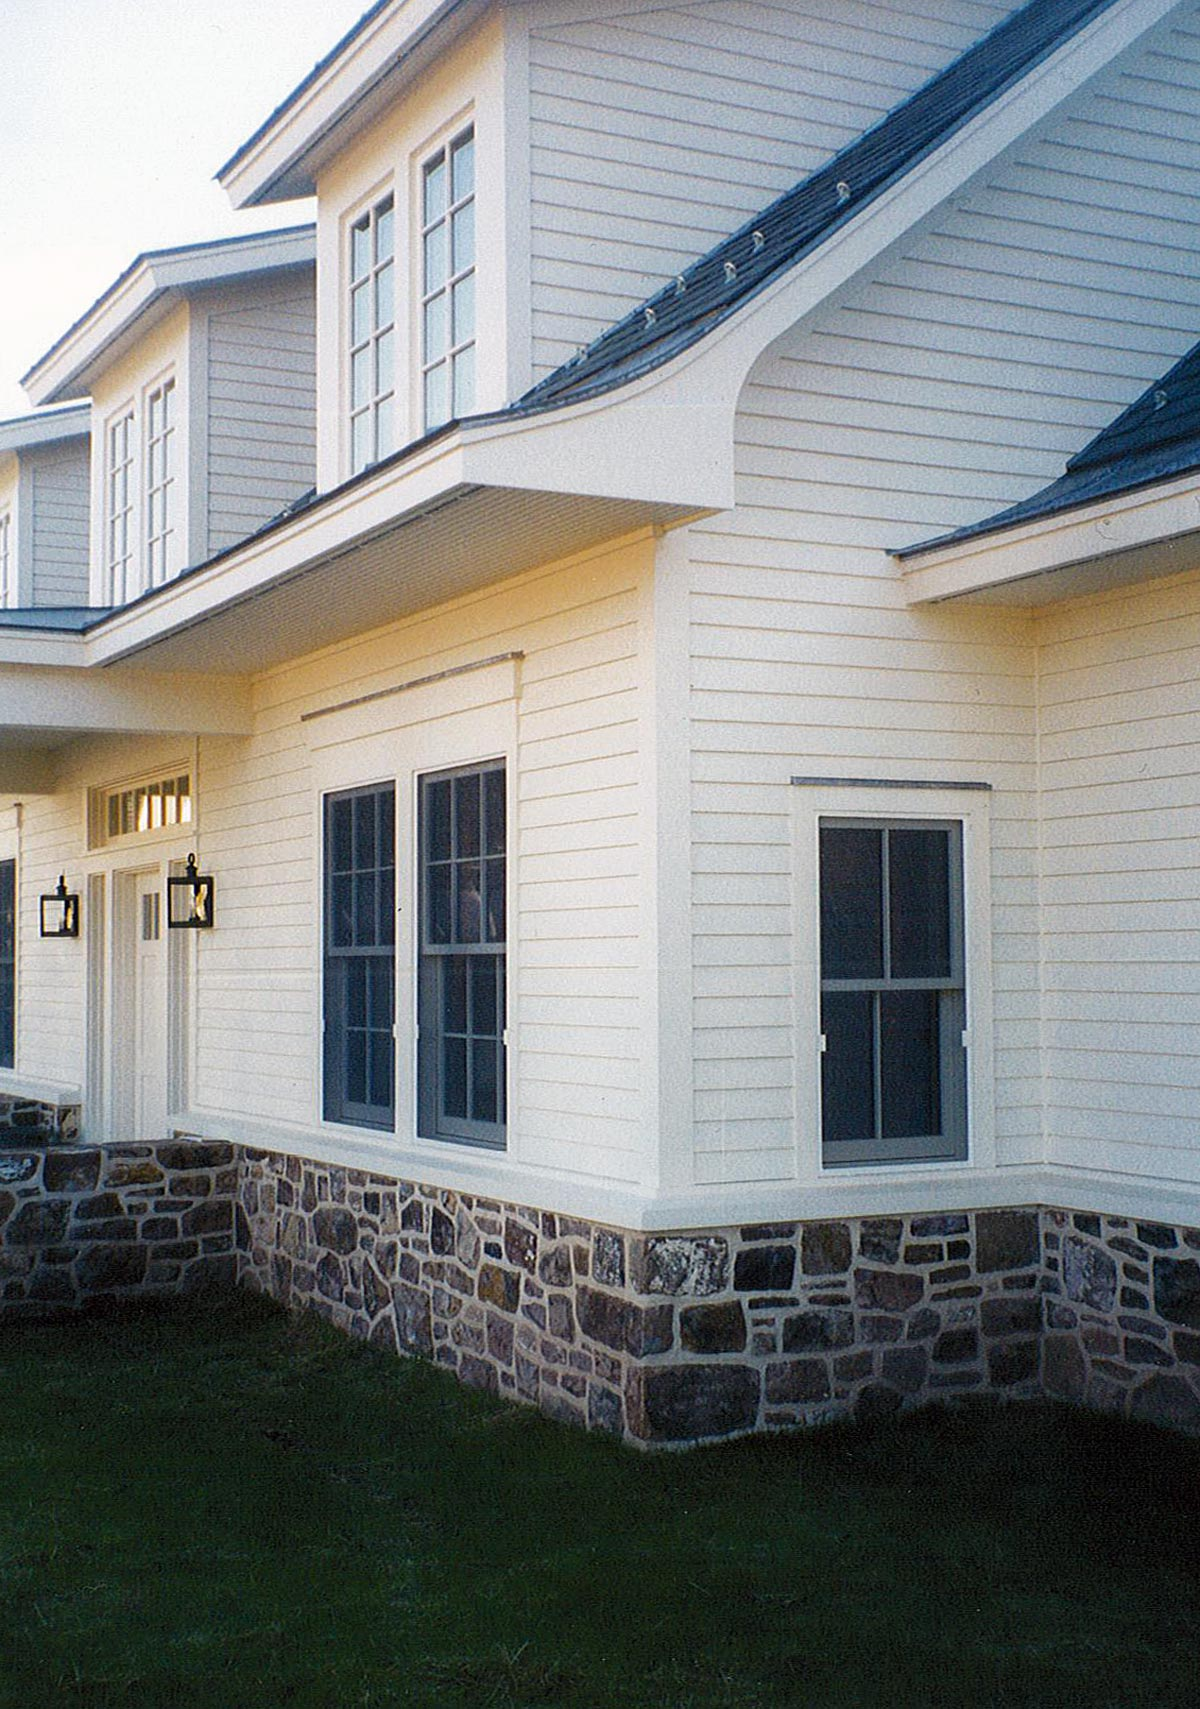 Double Hung, Casement and Electric Awning Windows